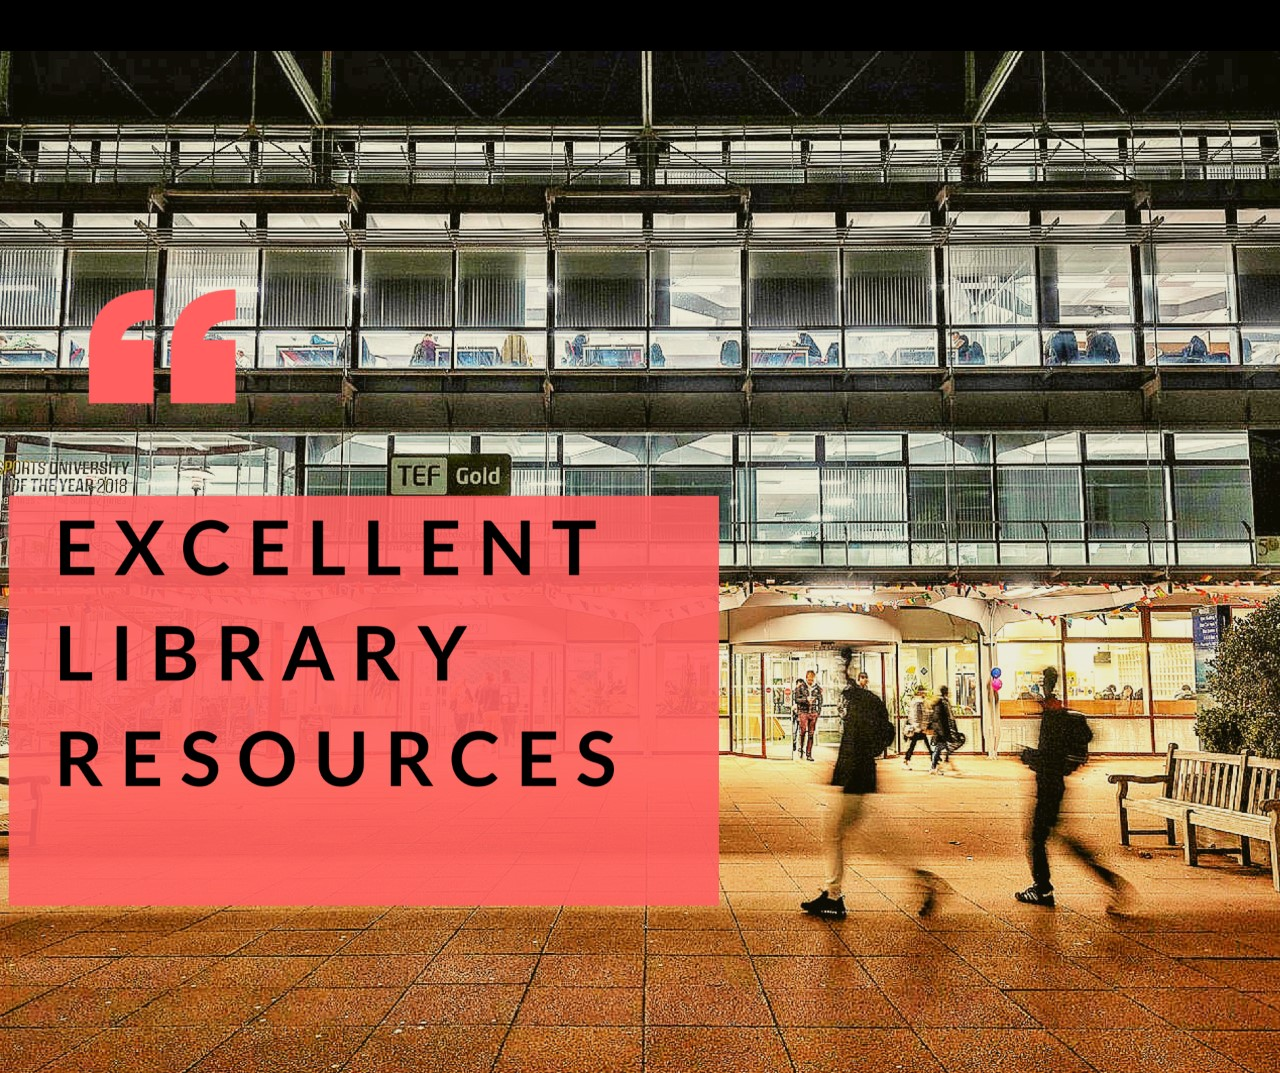 excellent library resources